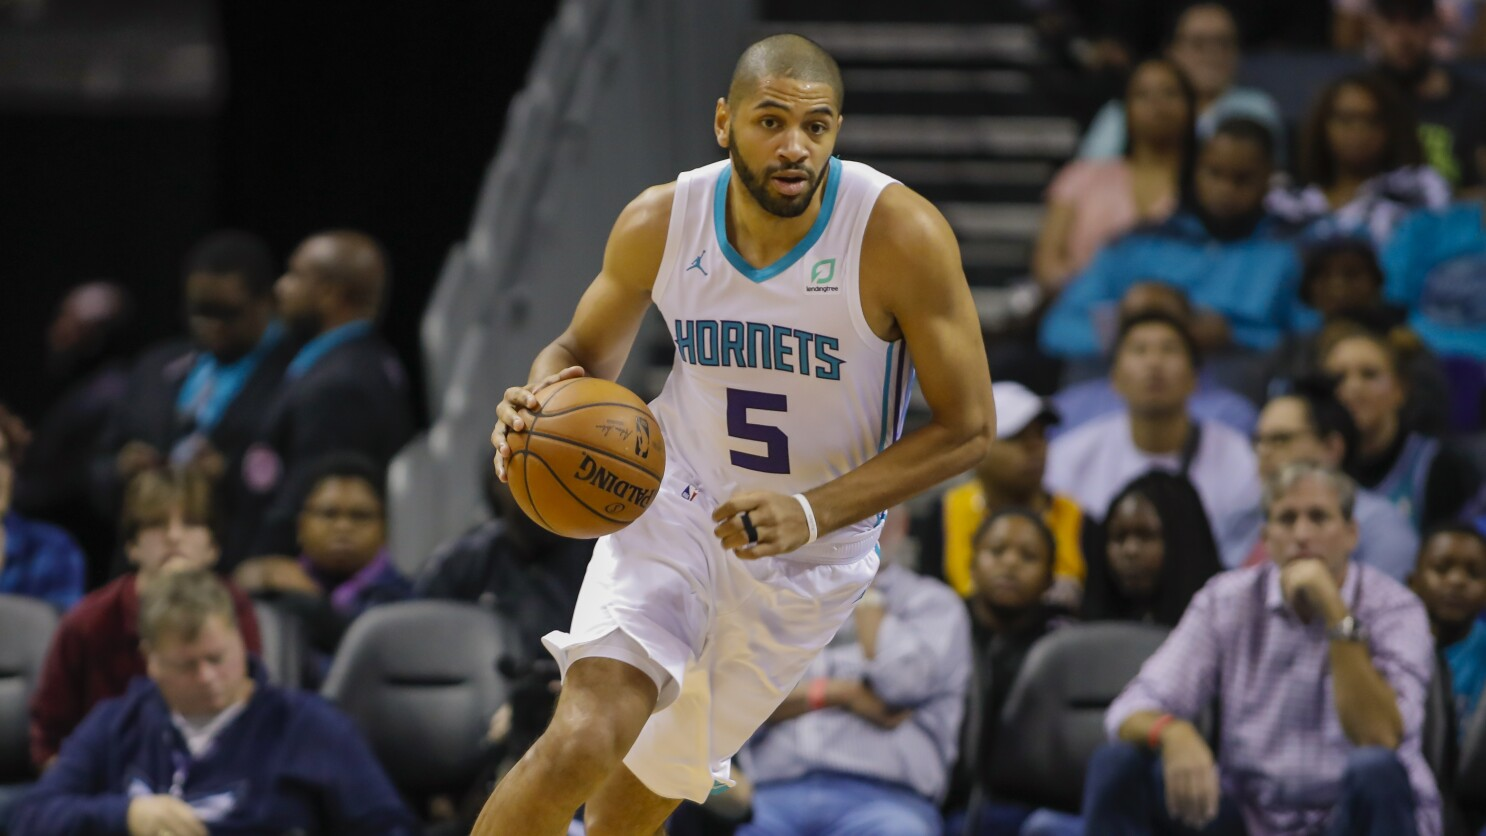 Nicolas Batum could give the Clippers what they sorely lack - Los Angeles Times